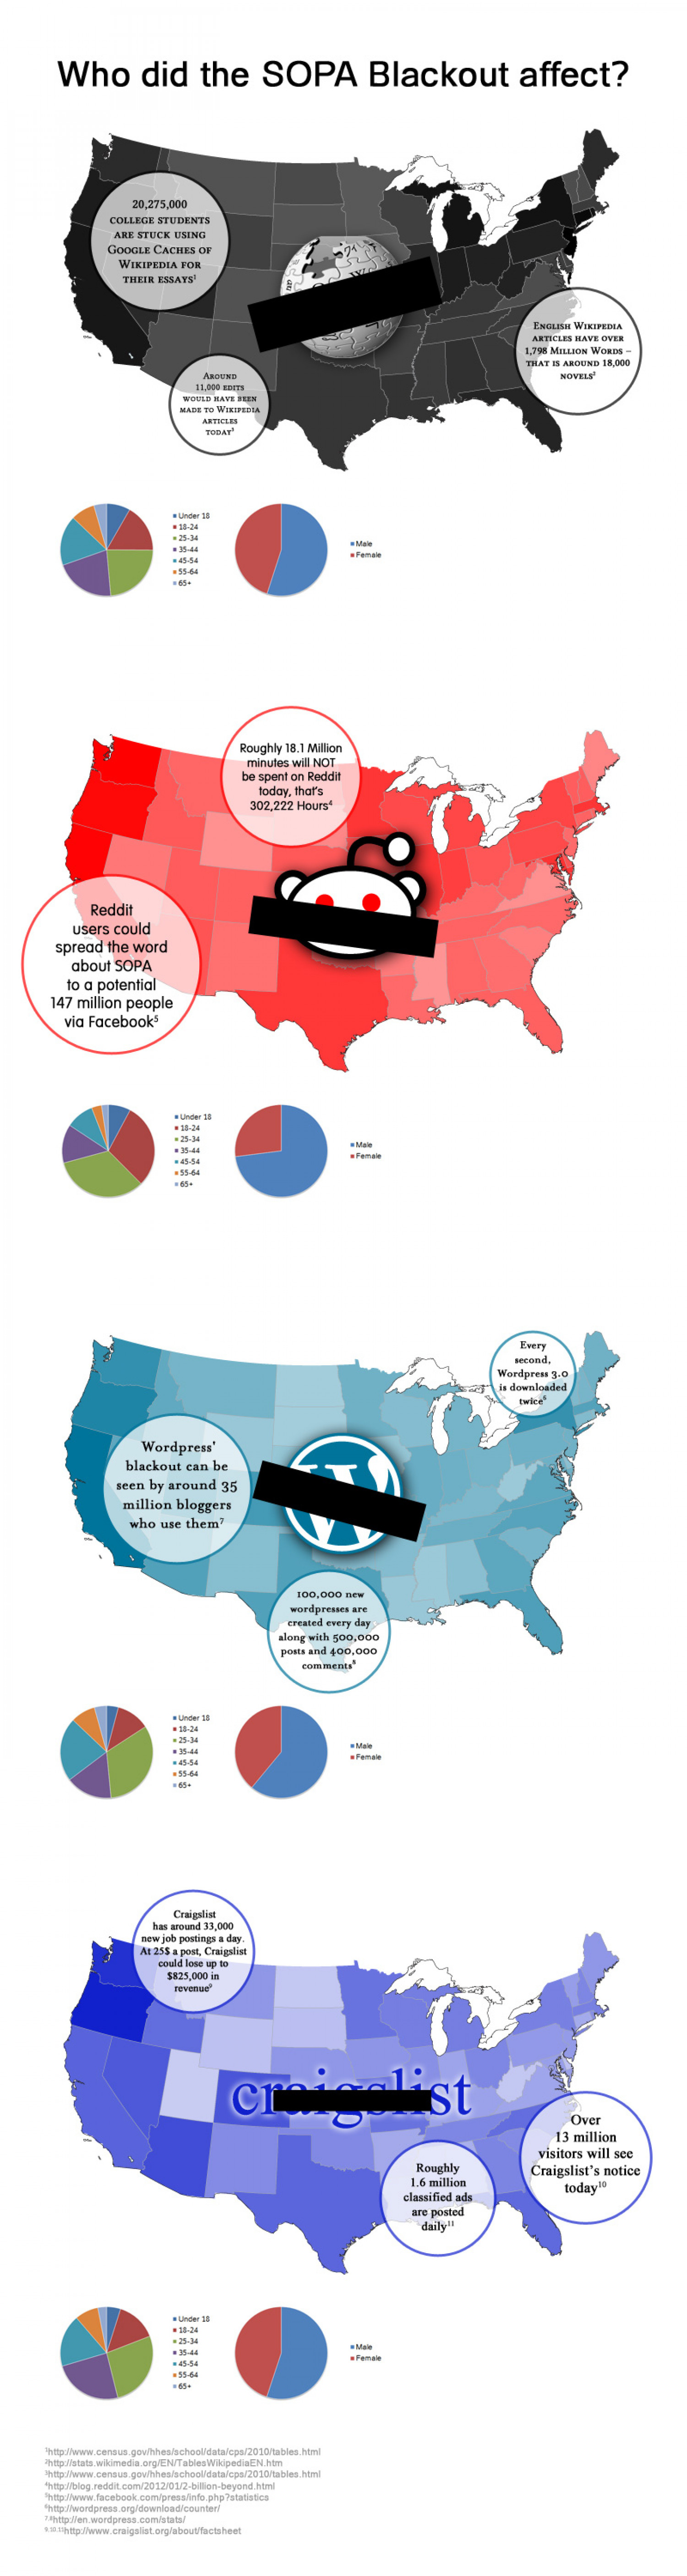 Who Did the SOPA Blackout Really Affect? Infographic